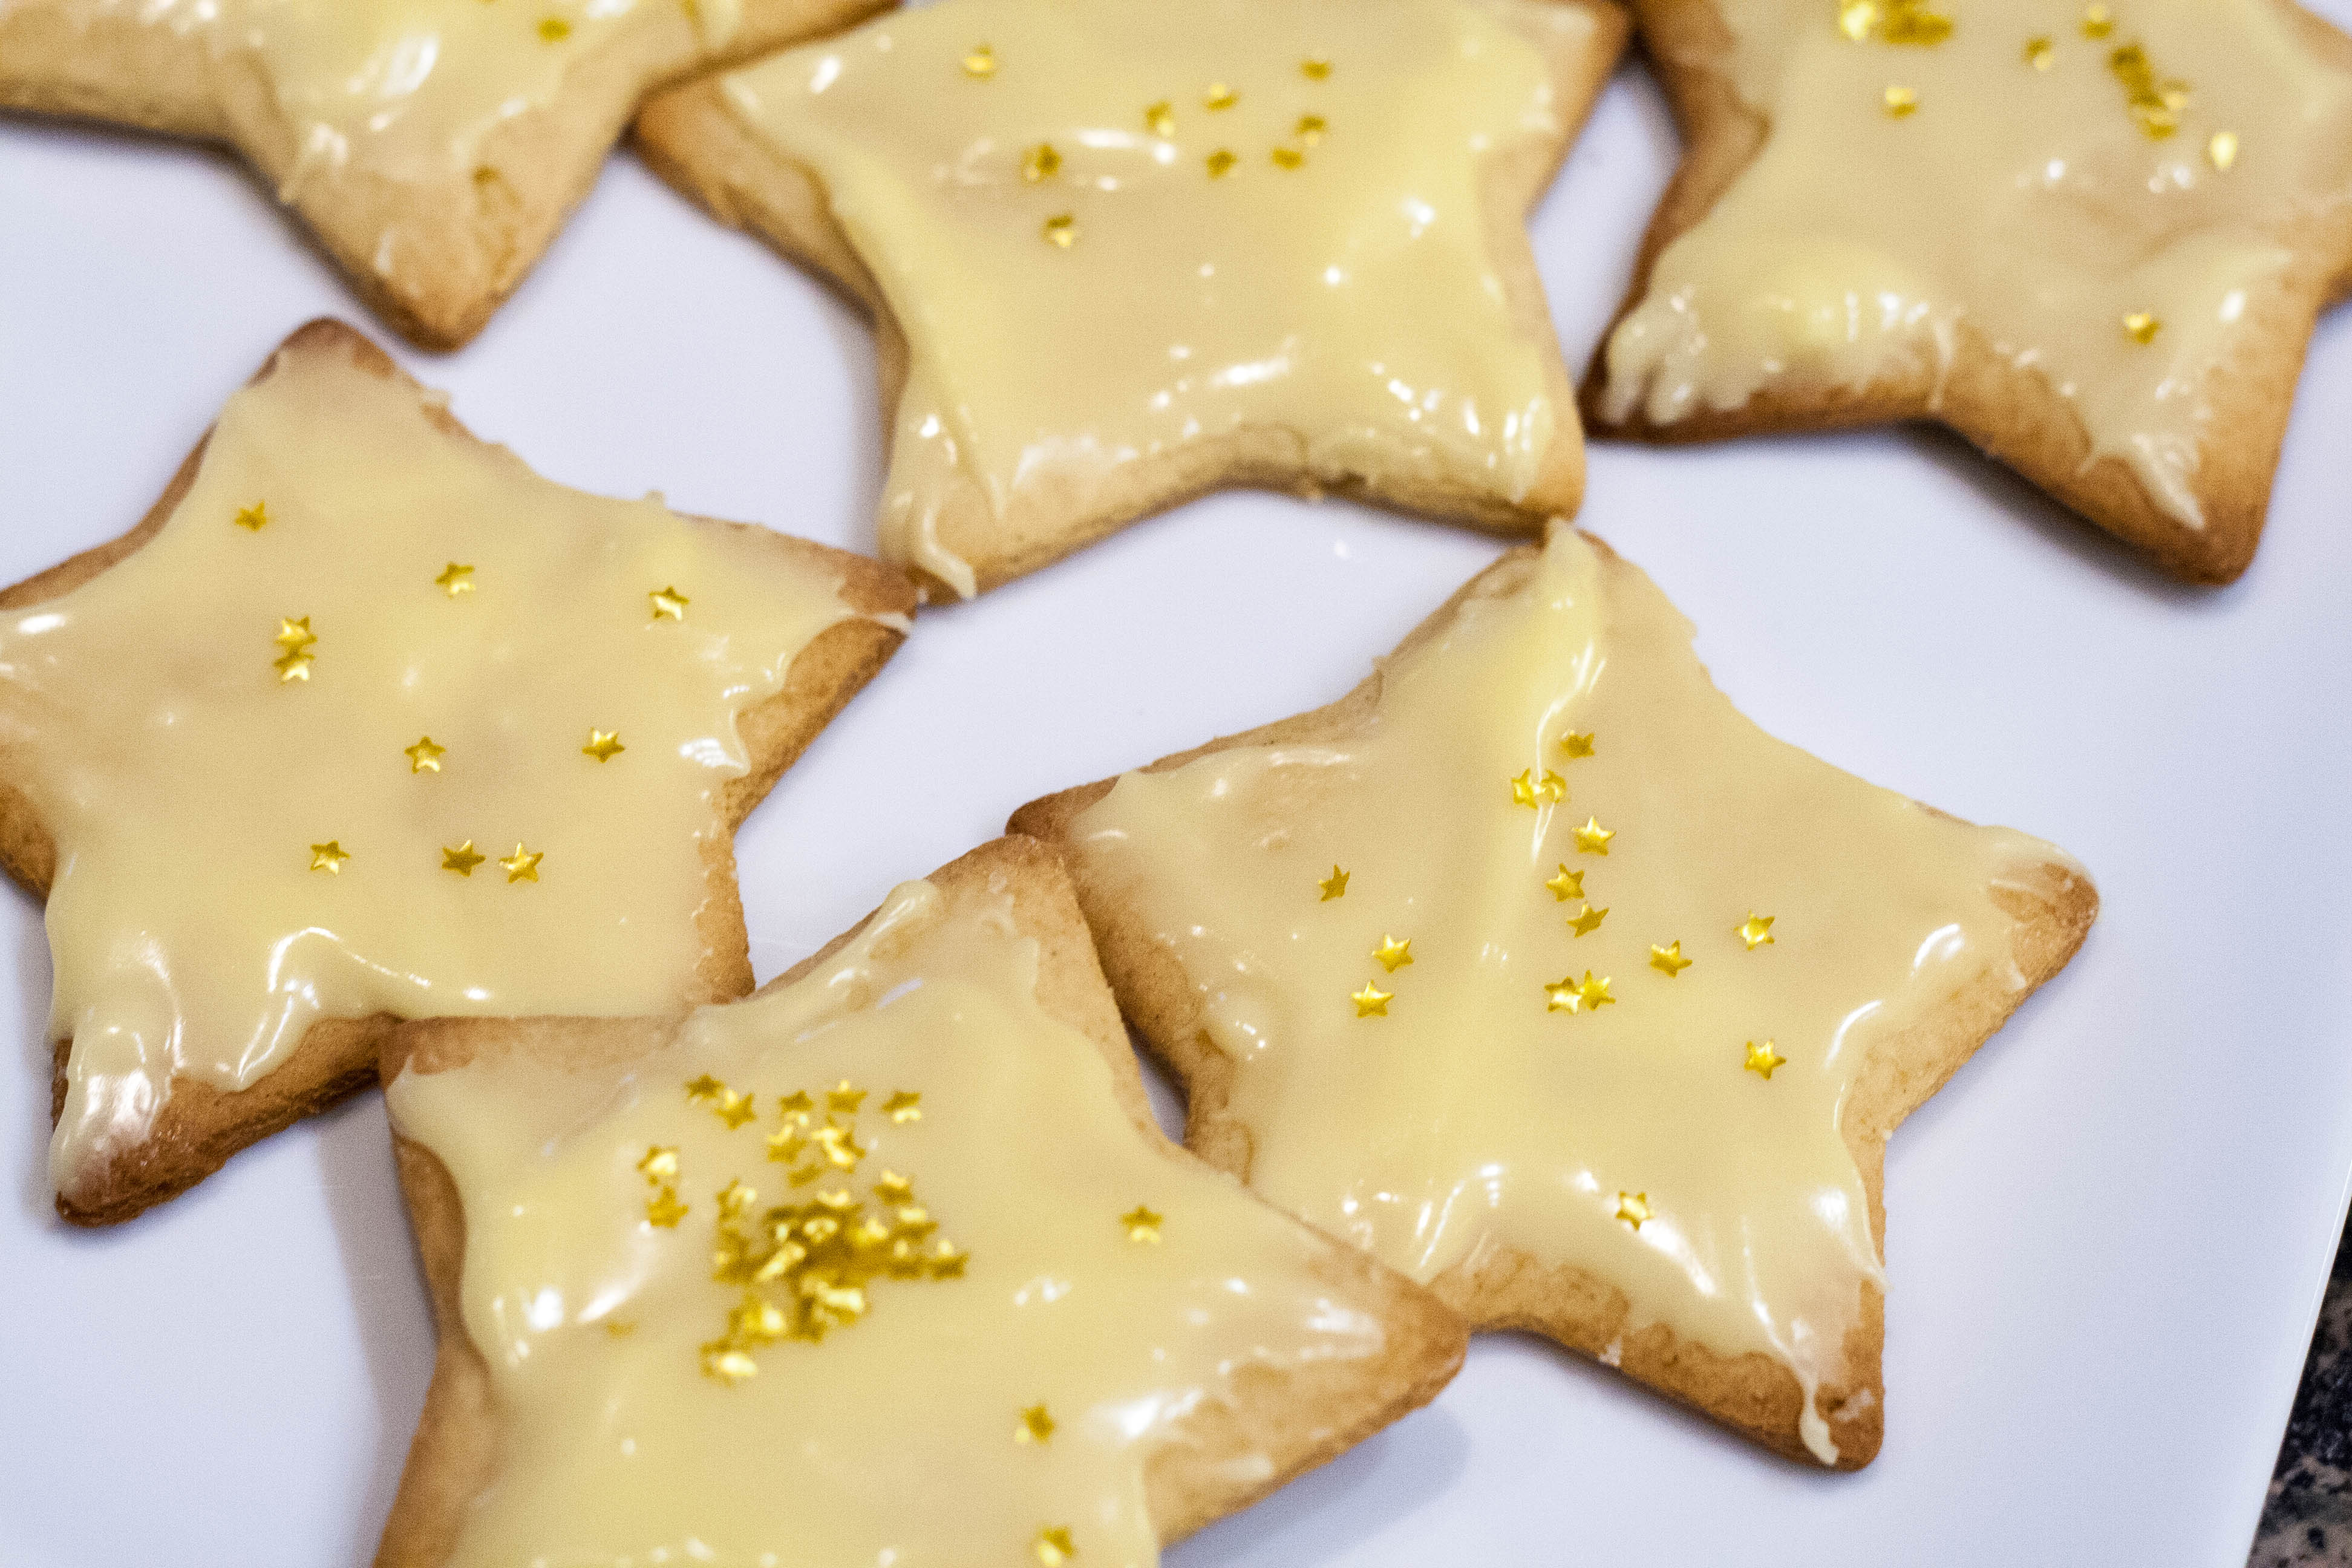 ... cookie i found gold star edible glitter to decorate the cookie with as